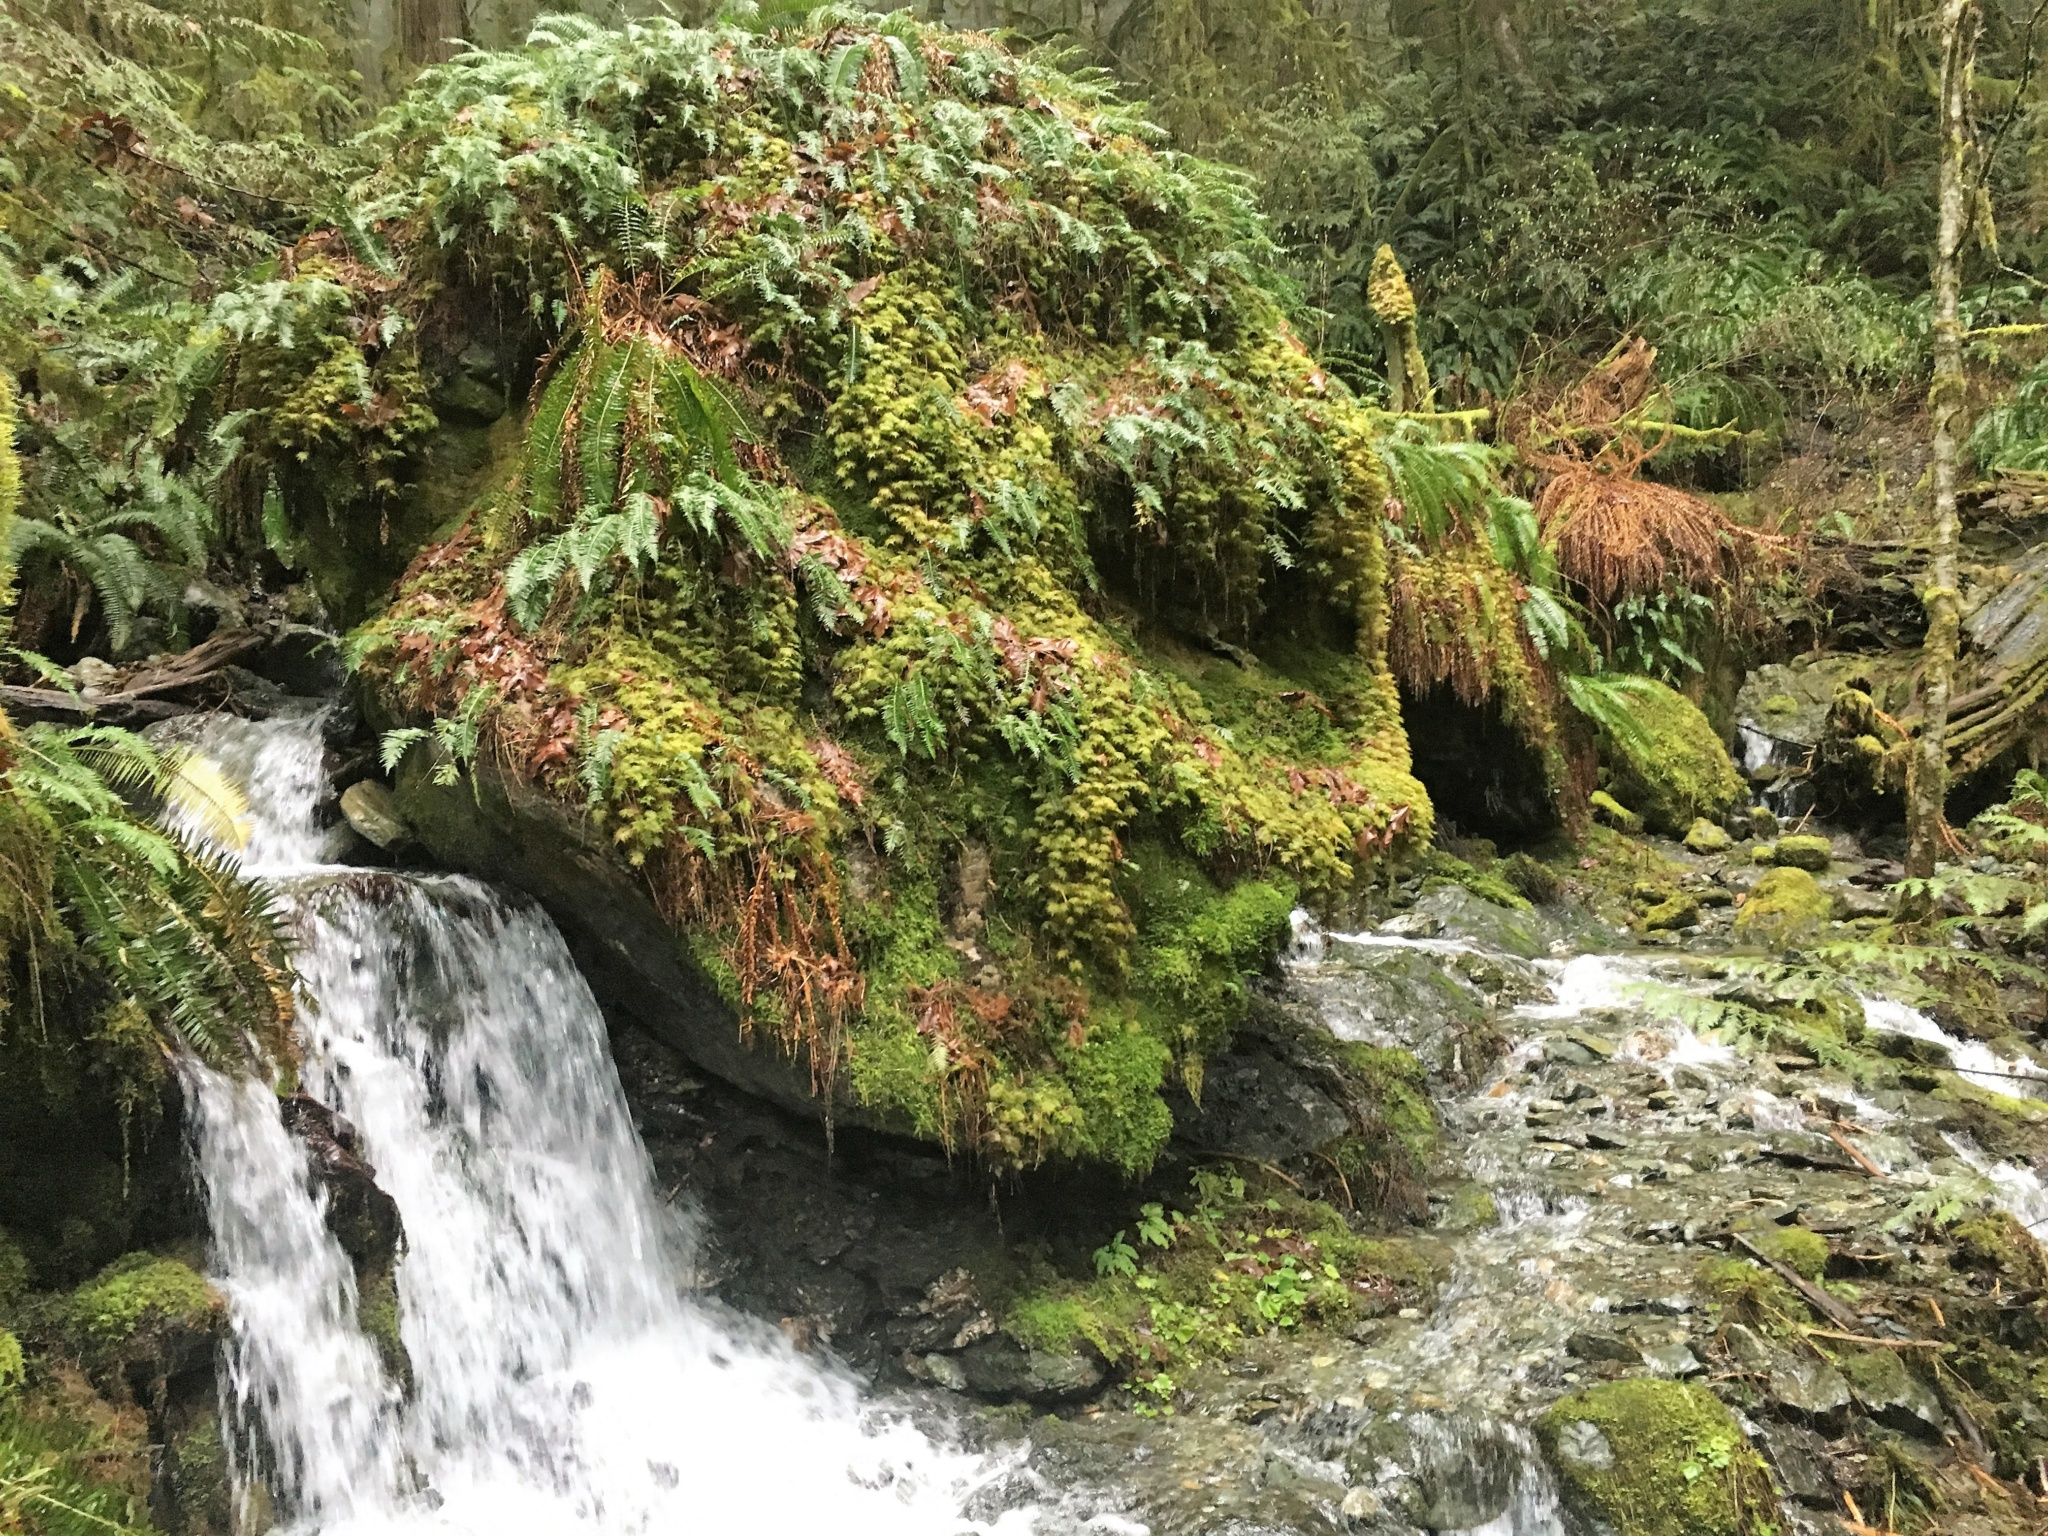 marblemount chat sites Washington campsites site located in anacortes in washington is describes with essential camp site information we provide a detailed camp site description as accurately as possible.